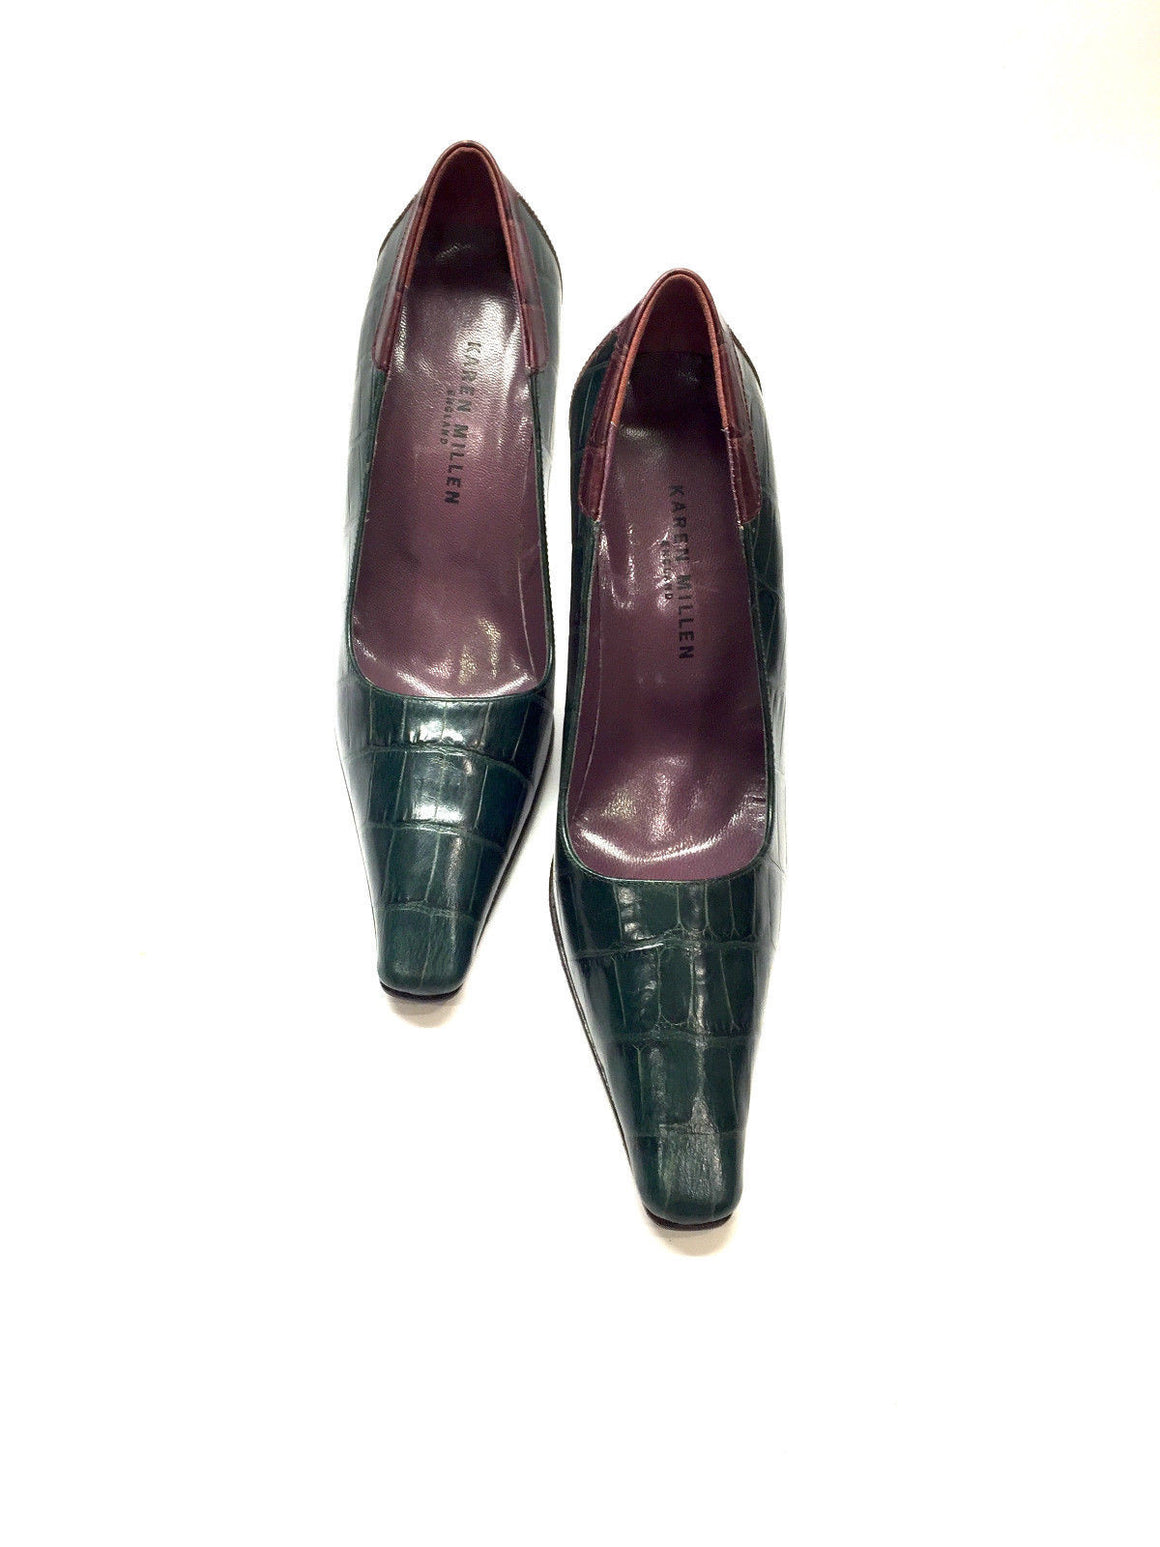 bisbiz.com KAREN MILLEN  Forest-Green/Burgundy Moc-Croc Leather Bent Heel Pumps Shoes  Size: 37/7 - Bis Luxury Resale